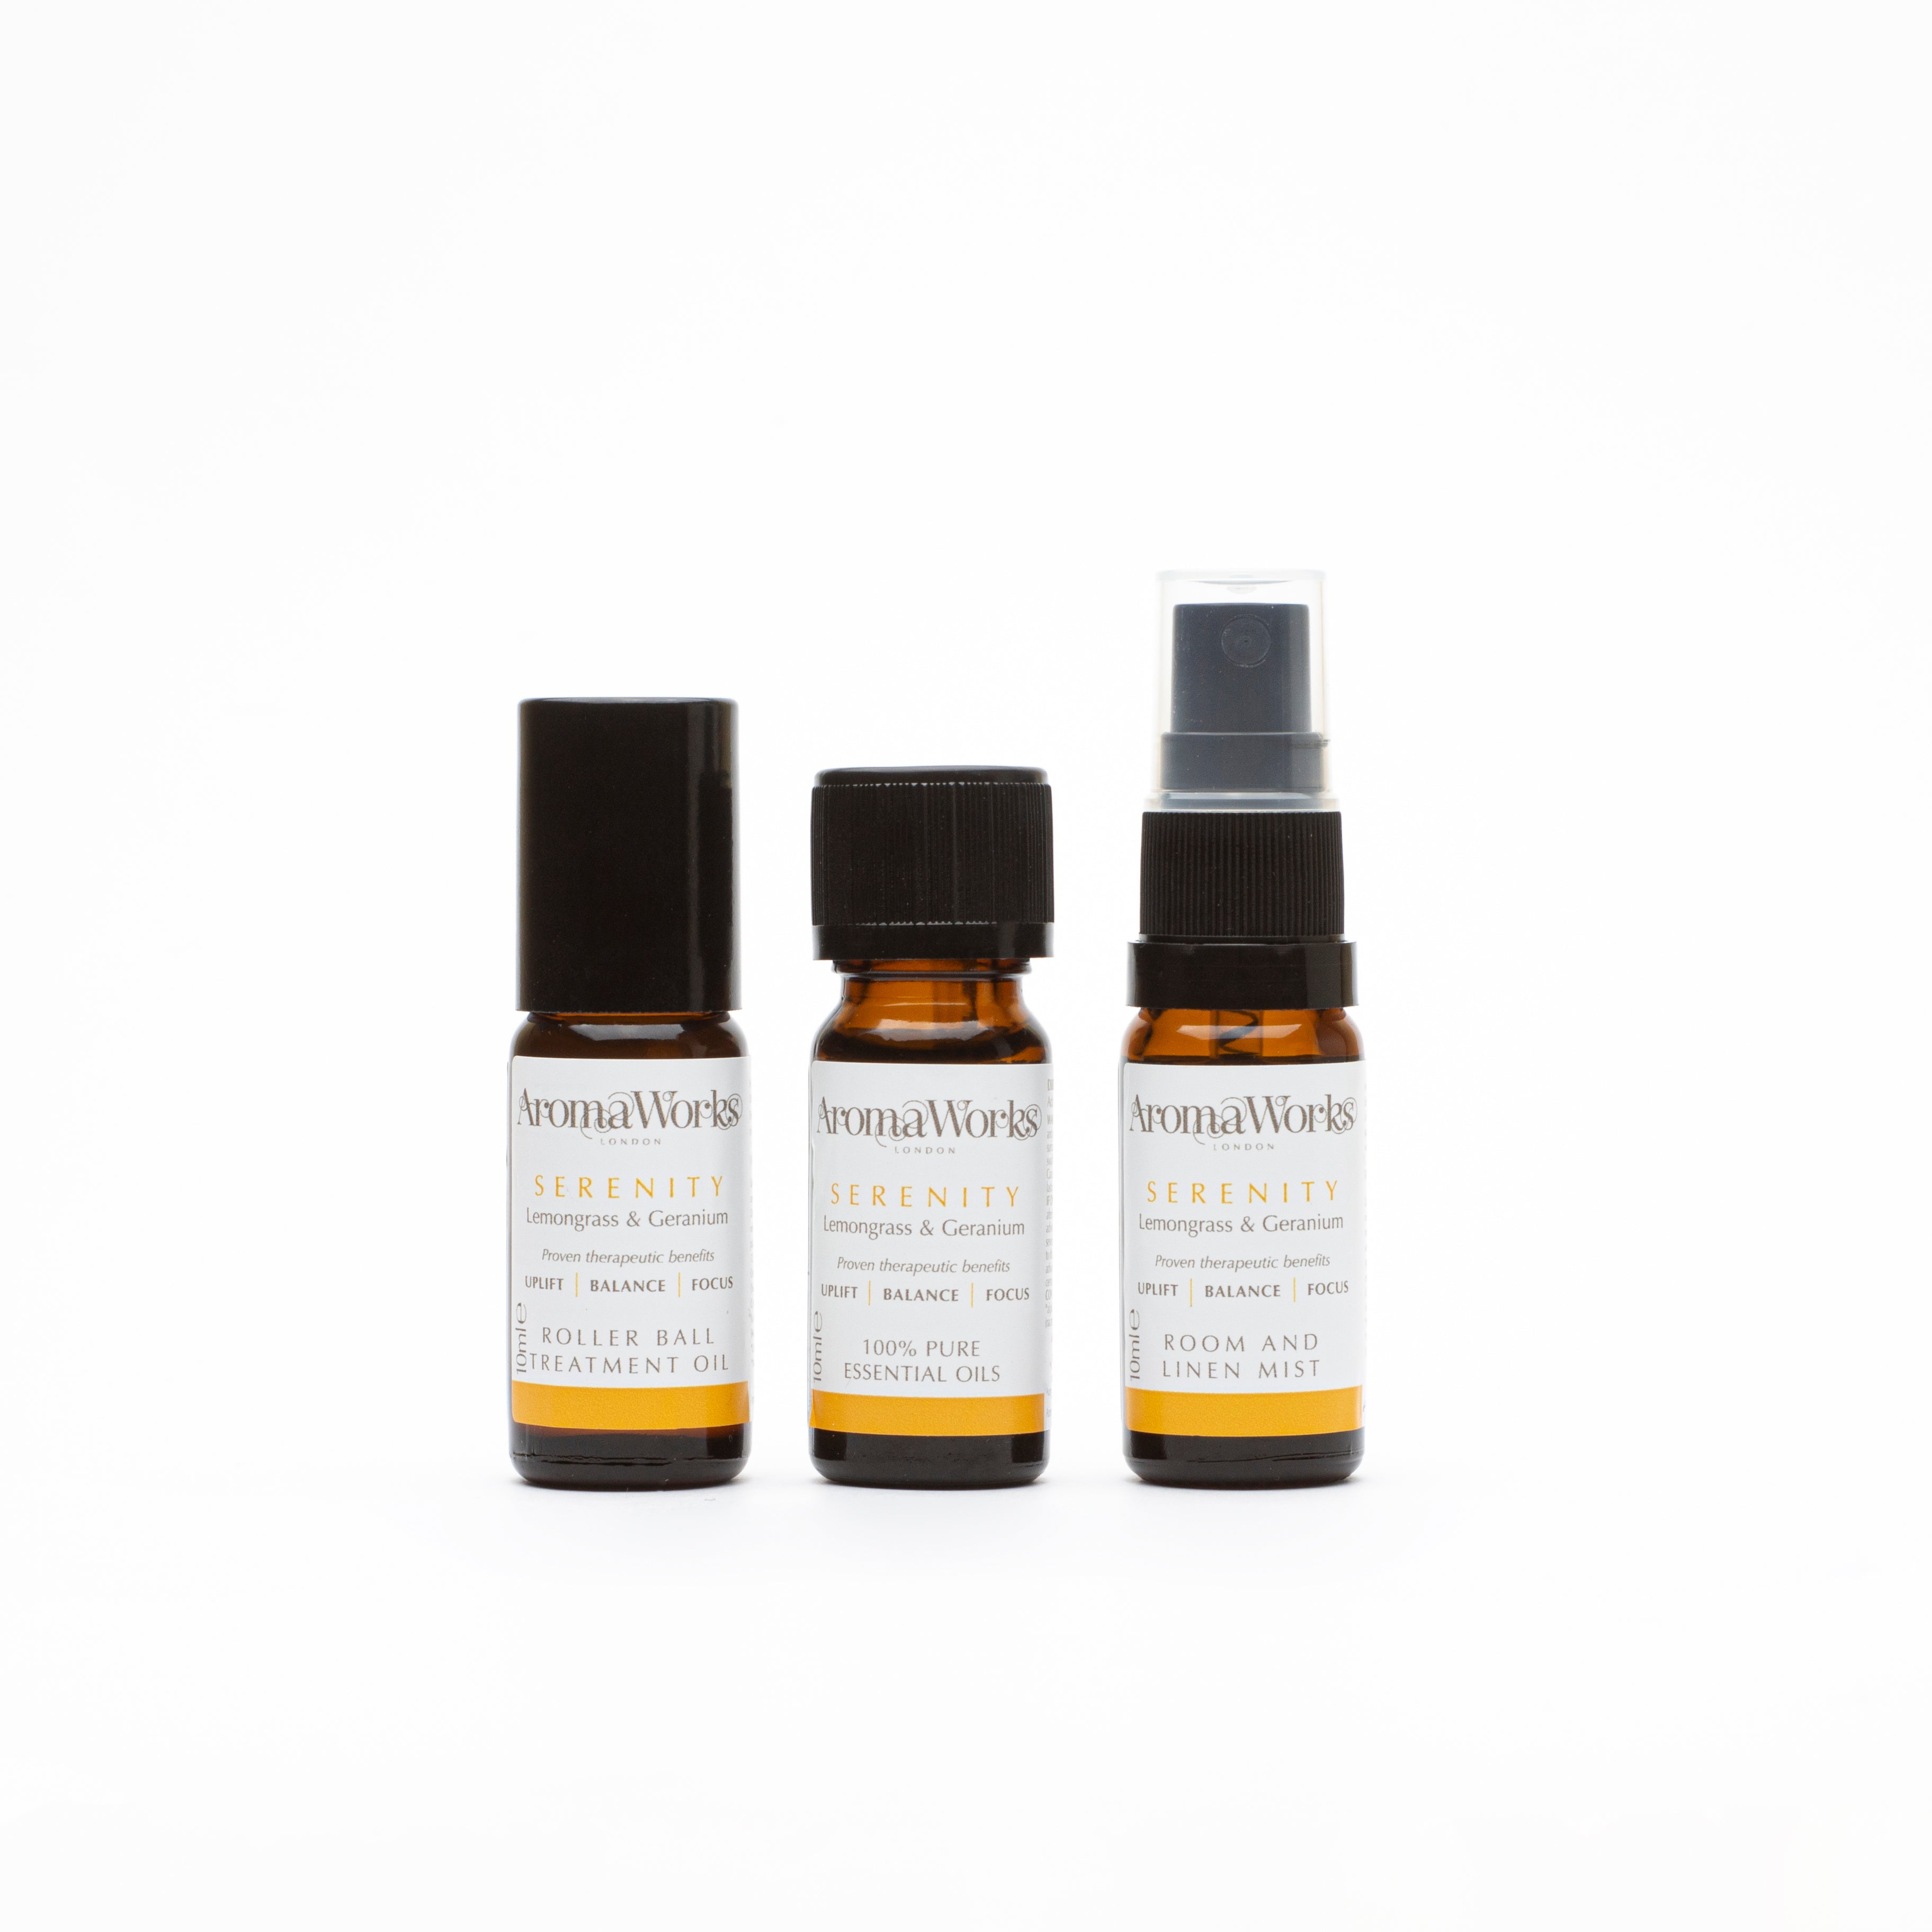 Serenity Wellbeing Trio 3 x 10ml products